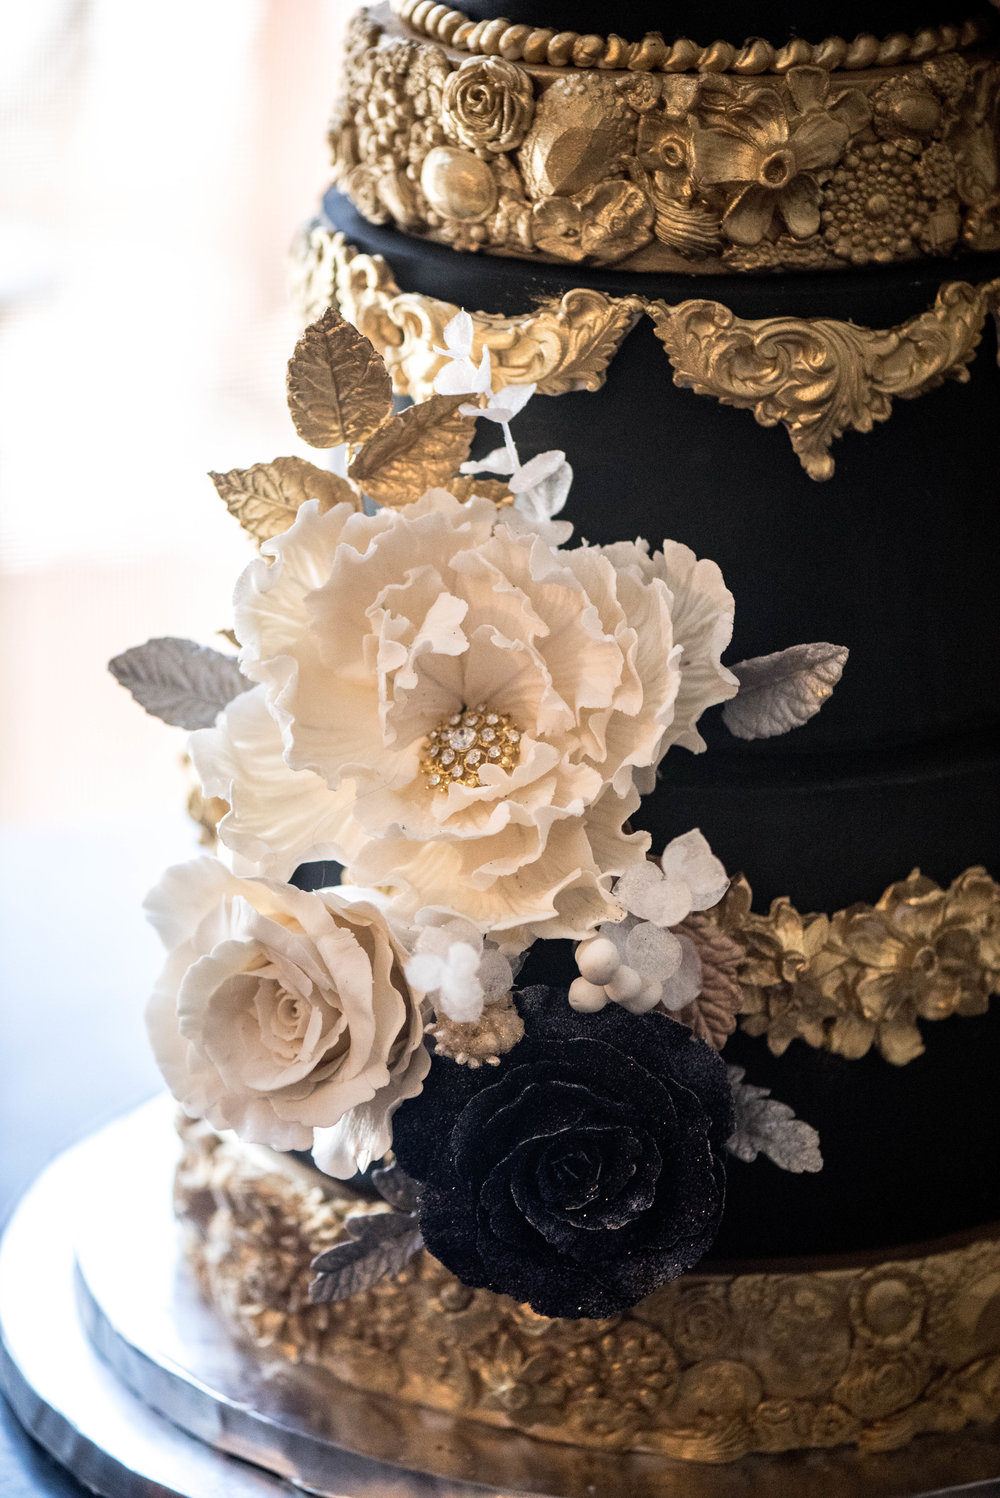 Black and gold wedding cake created for a luxury Virginia wedding